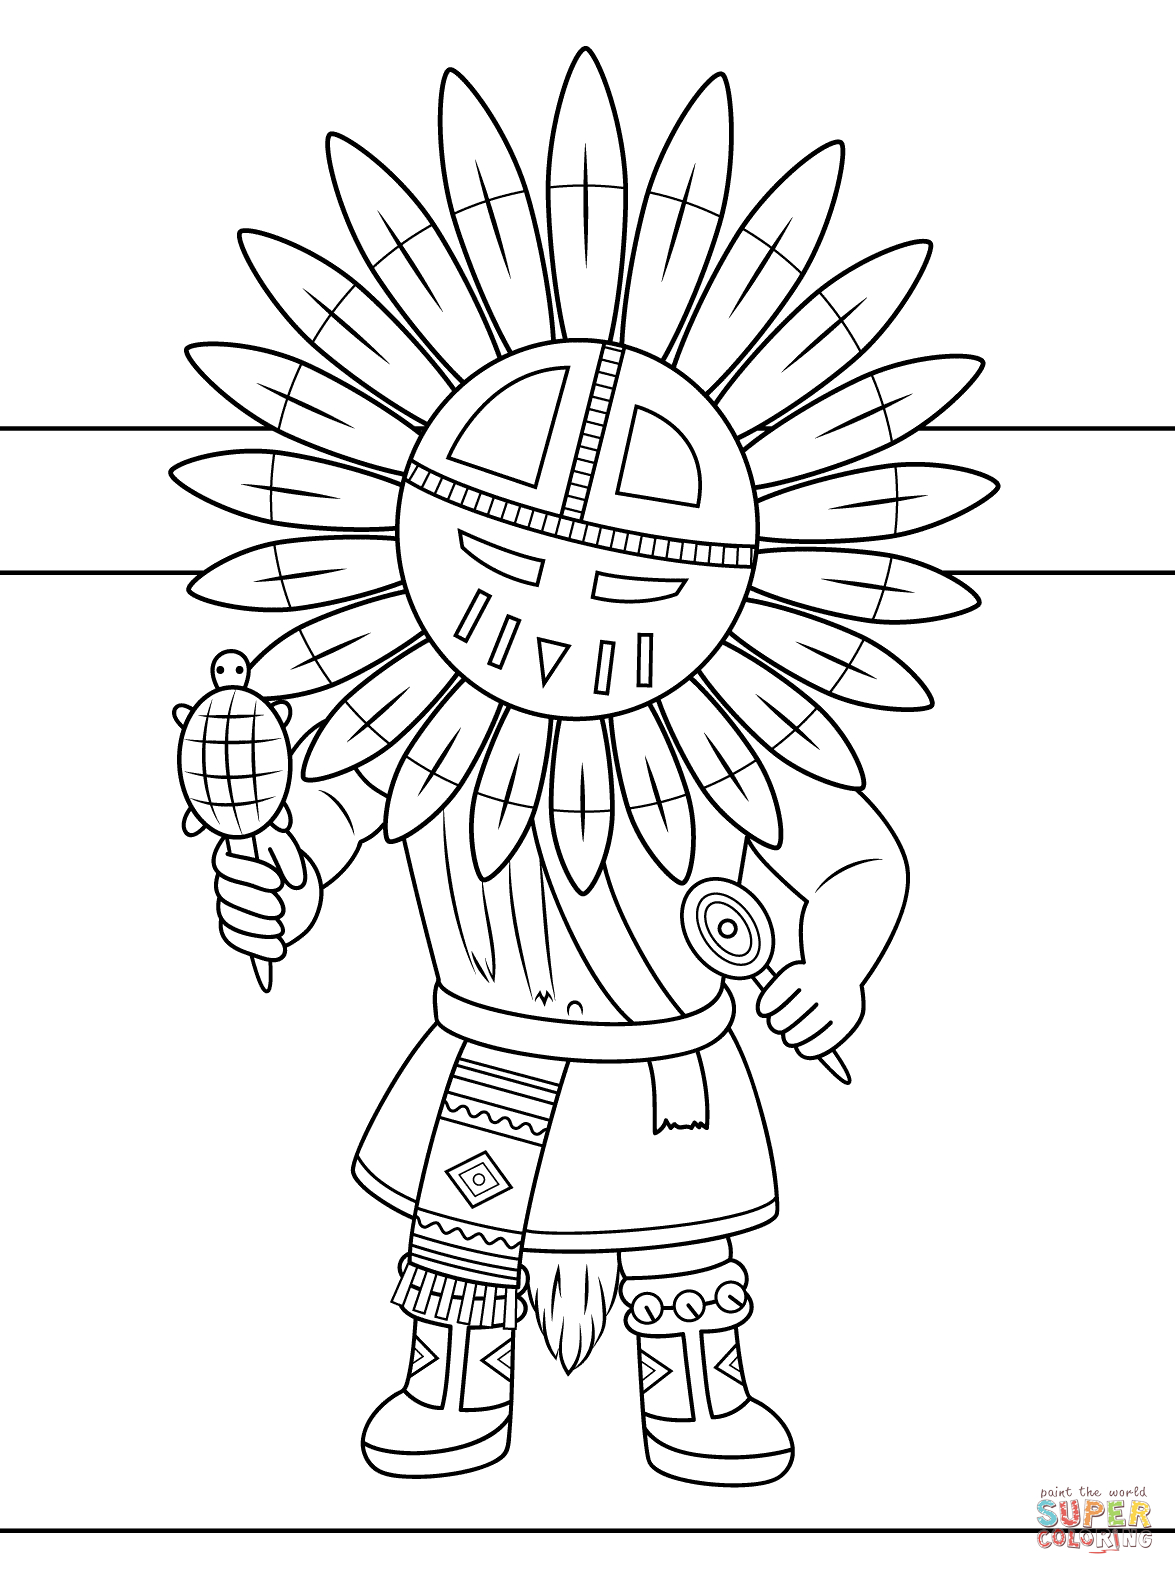 Indian Coloring Pages Printables  Download 20n - Save it to your computer